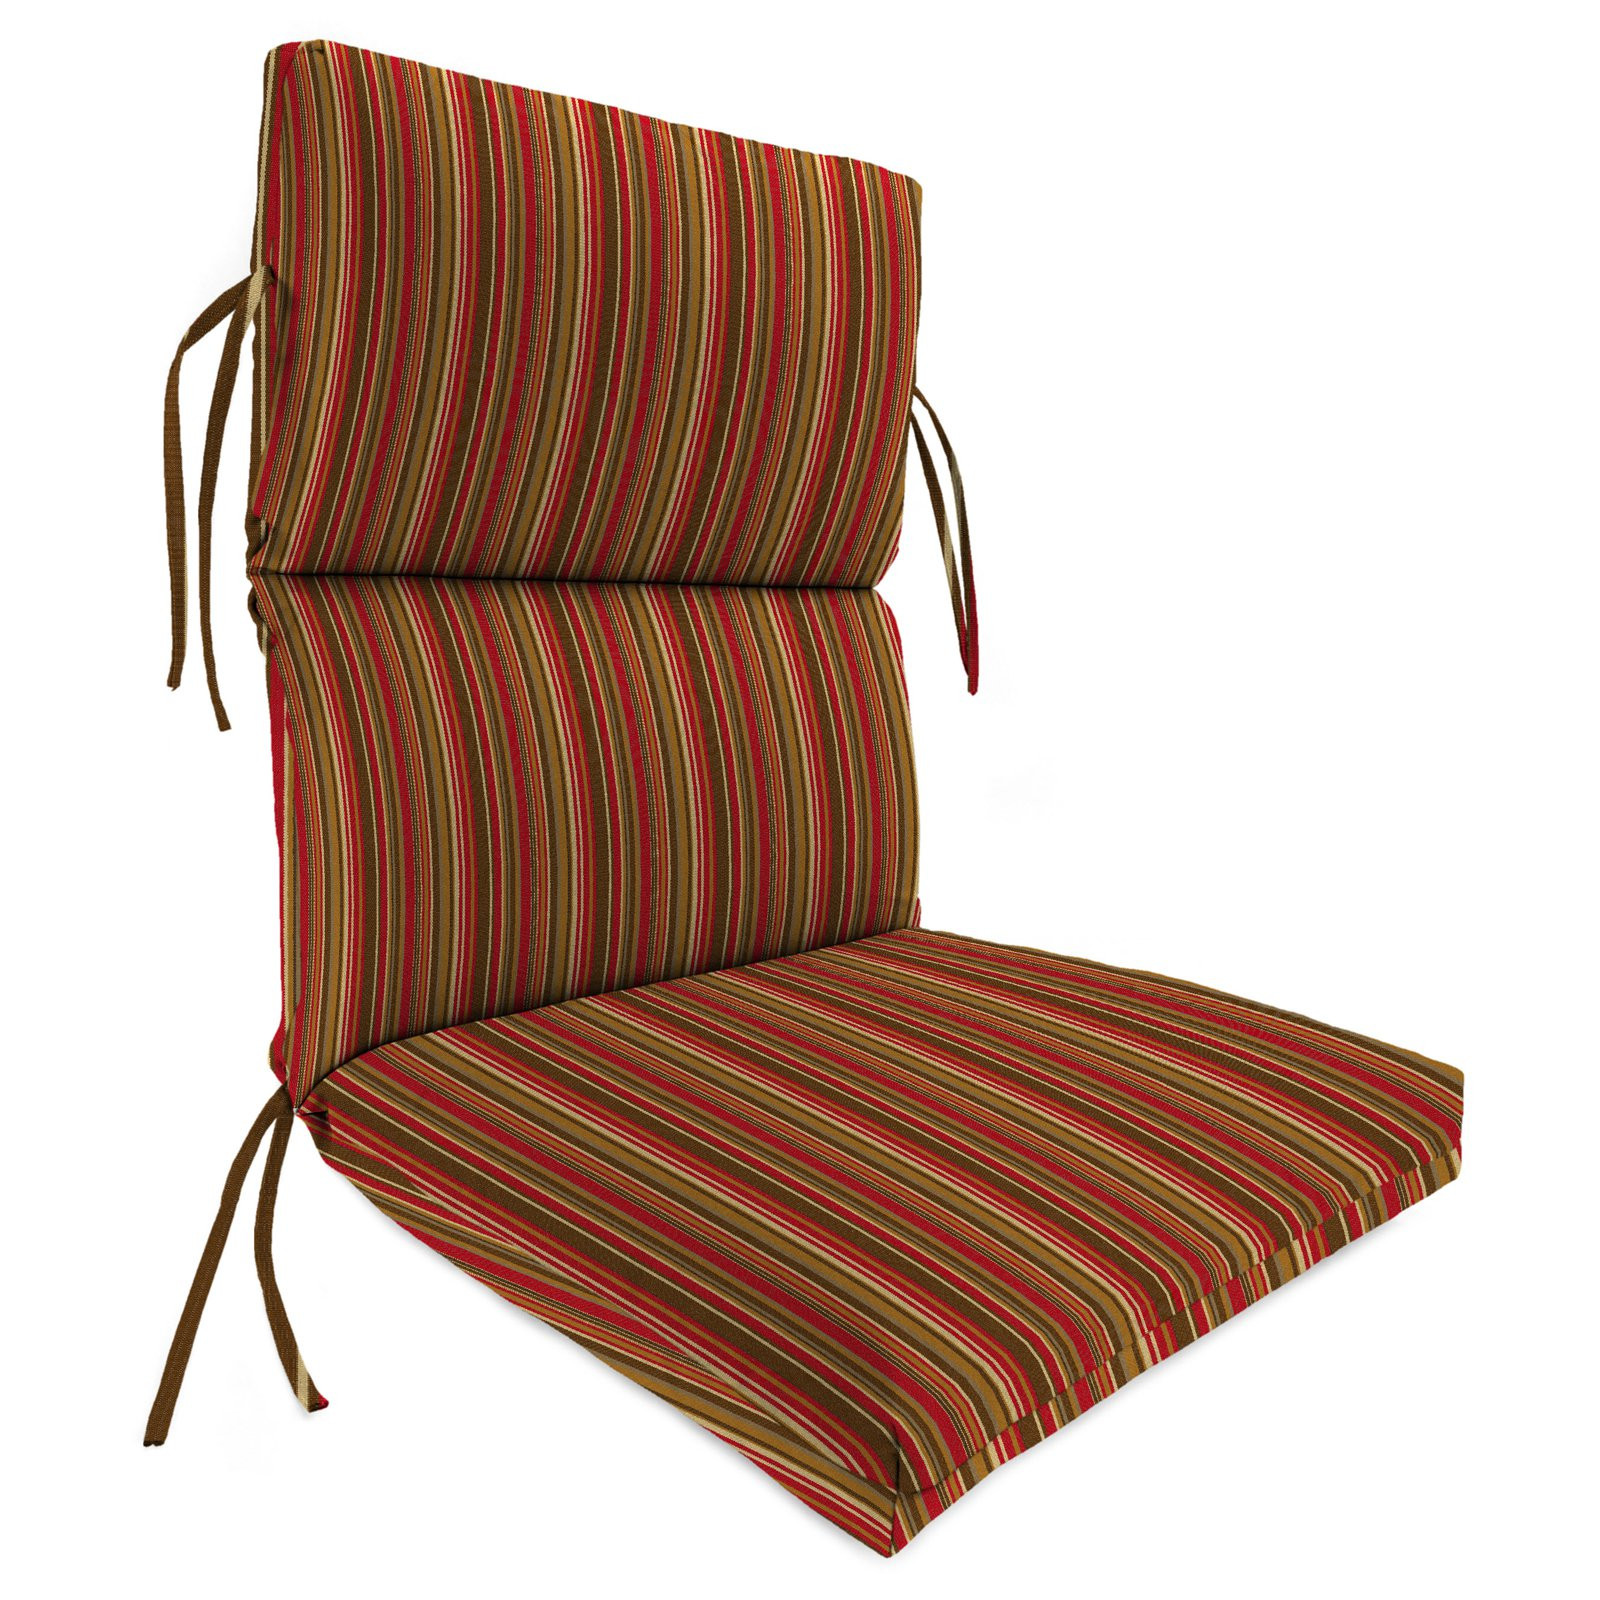 Best ideas about Outdoor Patio Chair Cushions . Save or Pin high back outdoor chair cushion for patio striped BLOCK Now.